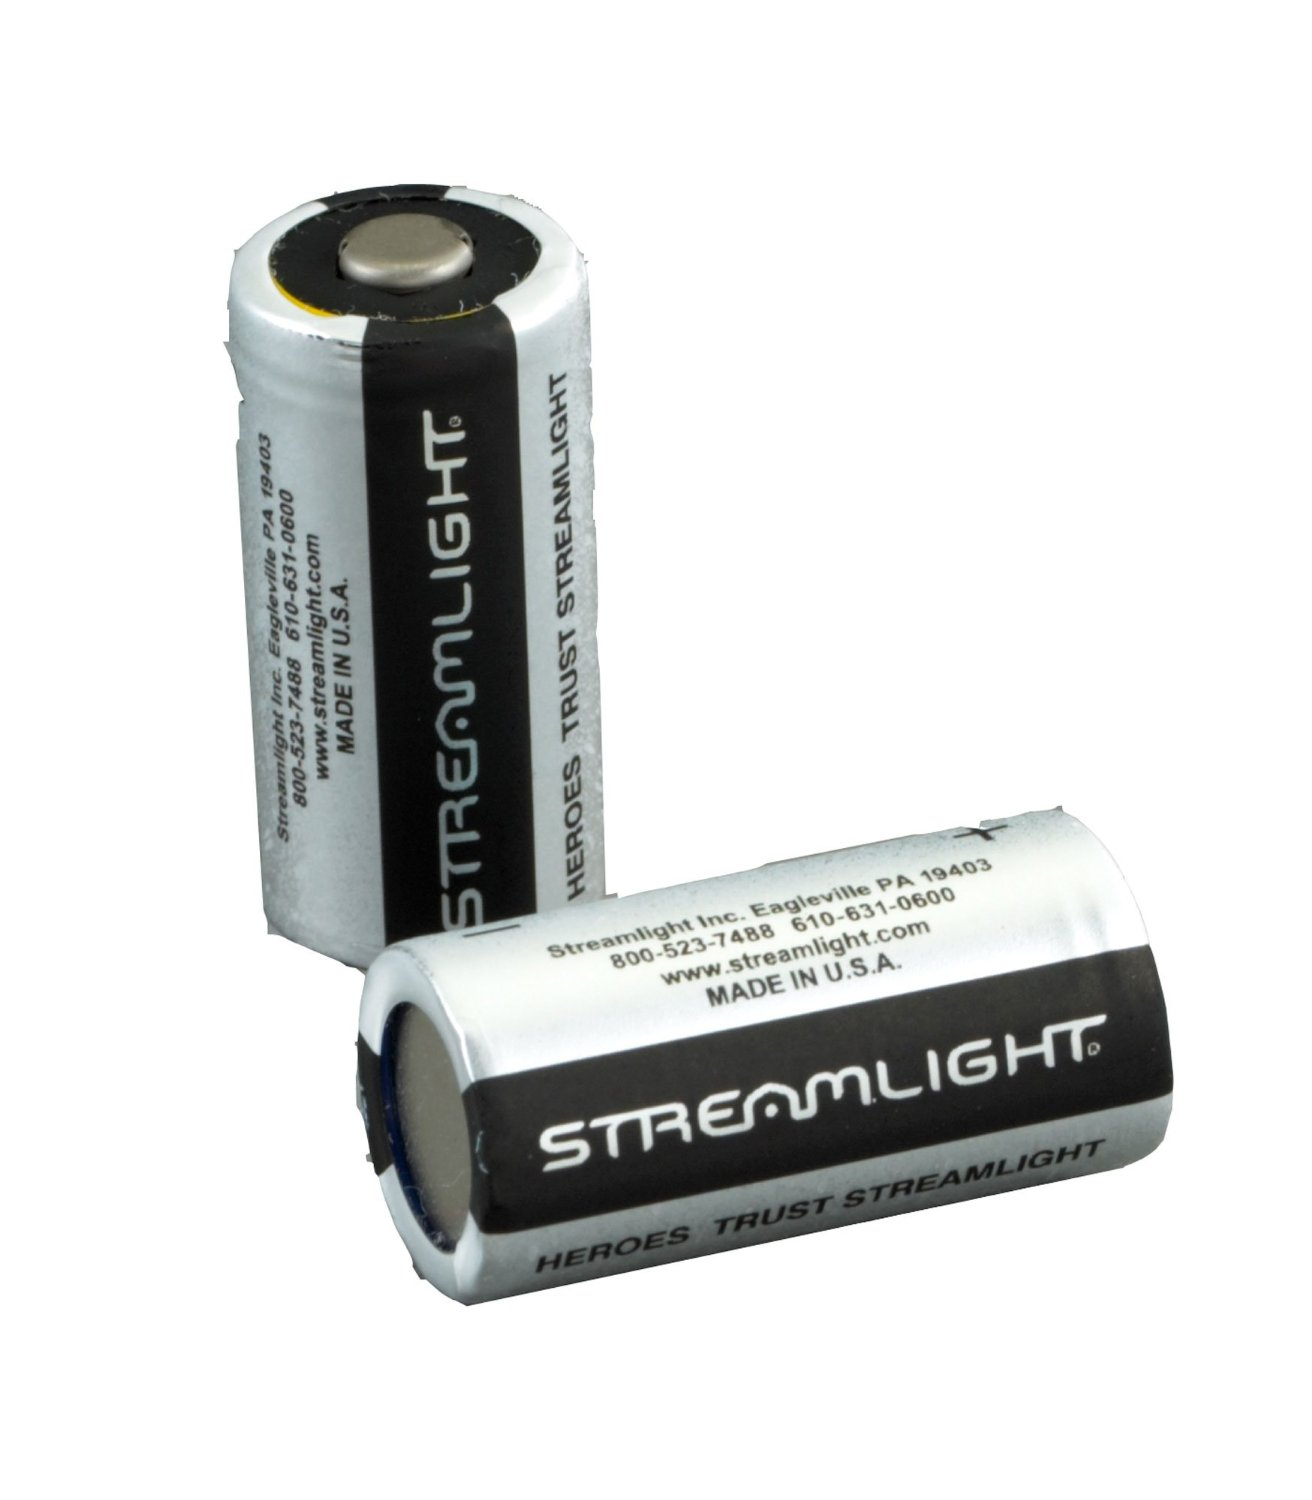 streamlight 6 pack 85175 lithium batteries cr123a 80926851757 ebay. Black Bedroom Furniture Sets. Home Design Ideas